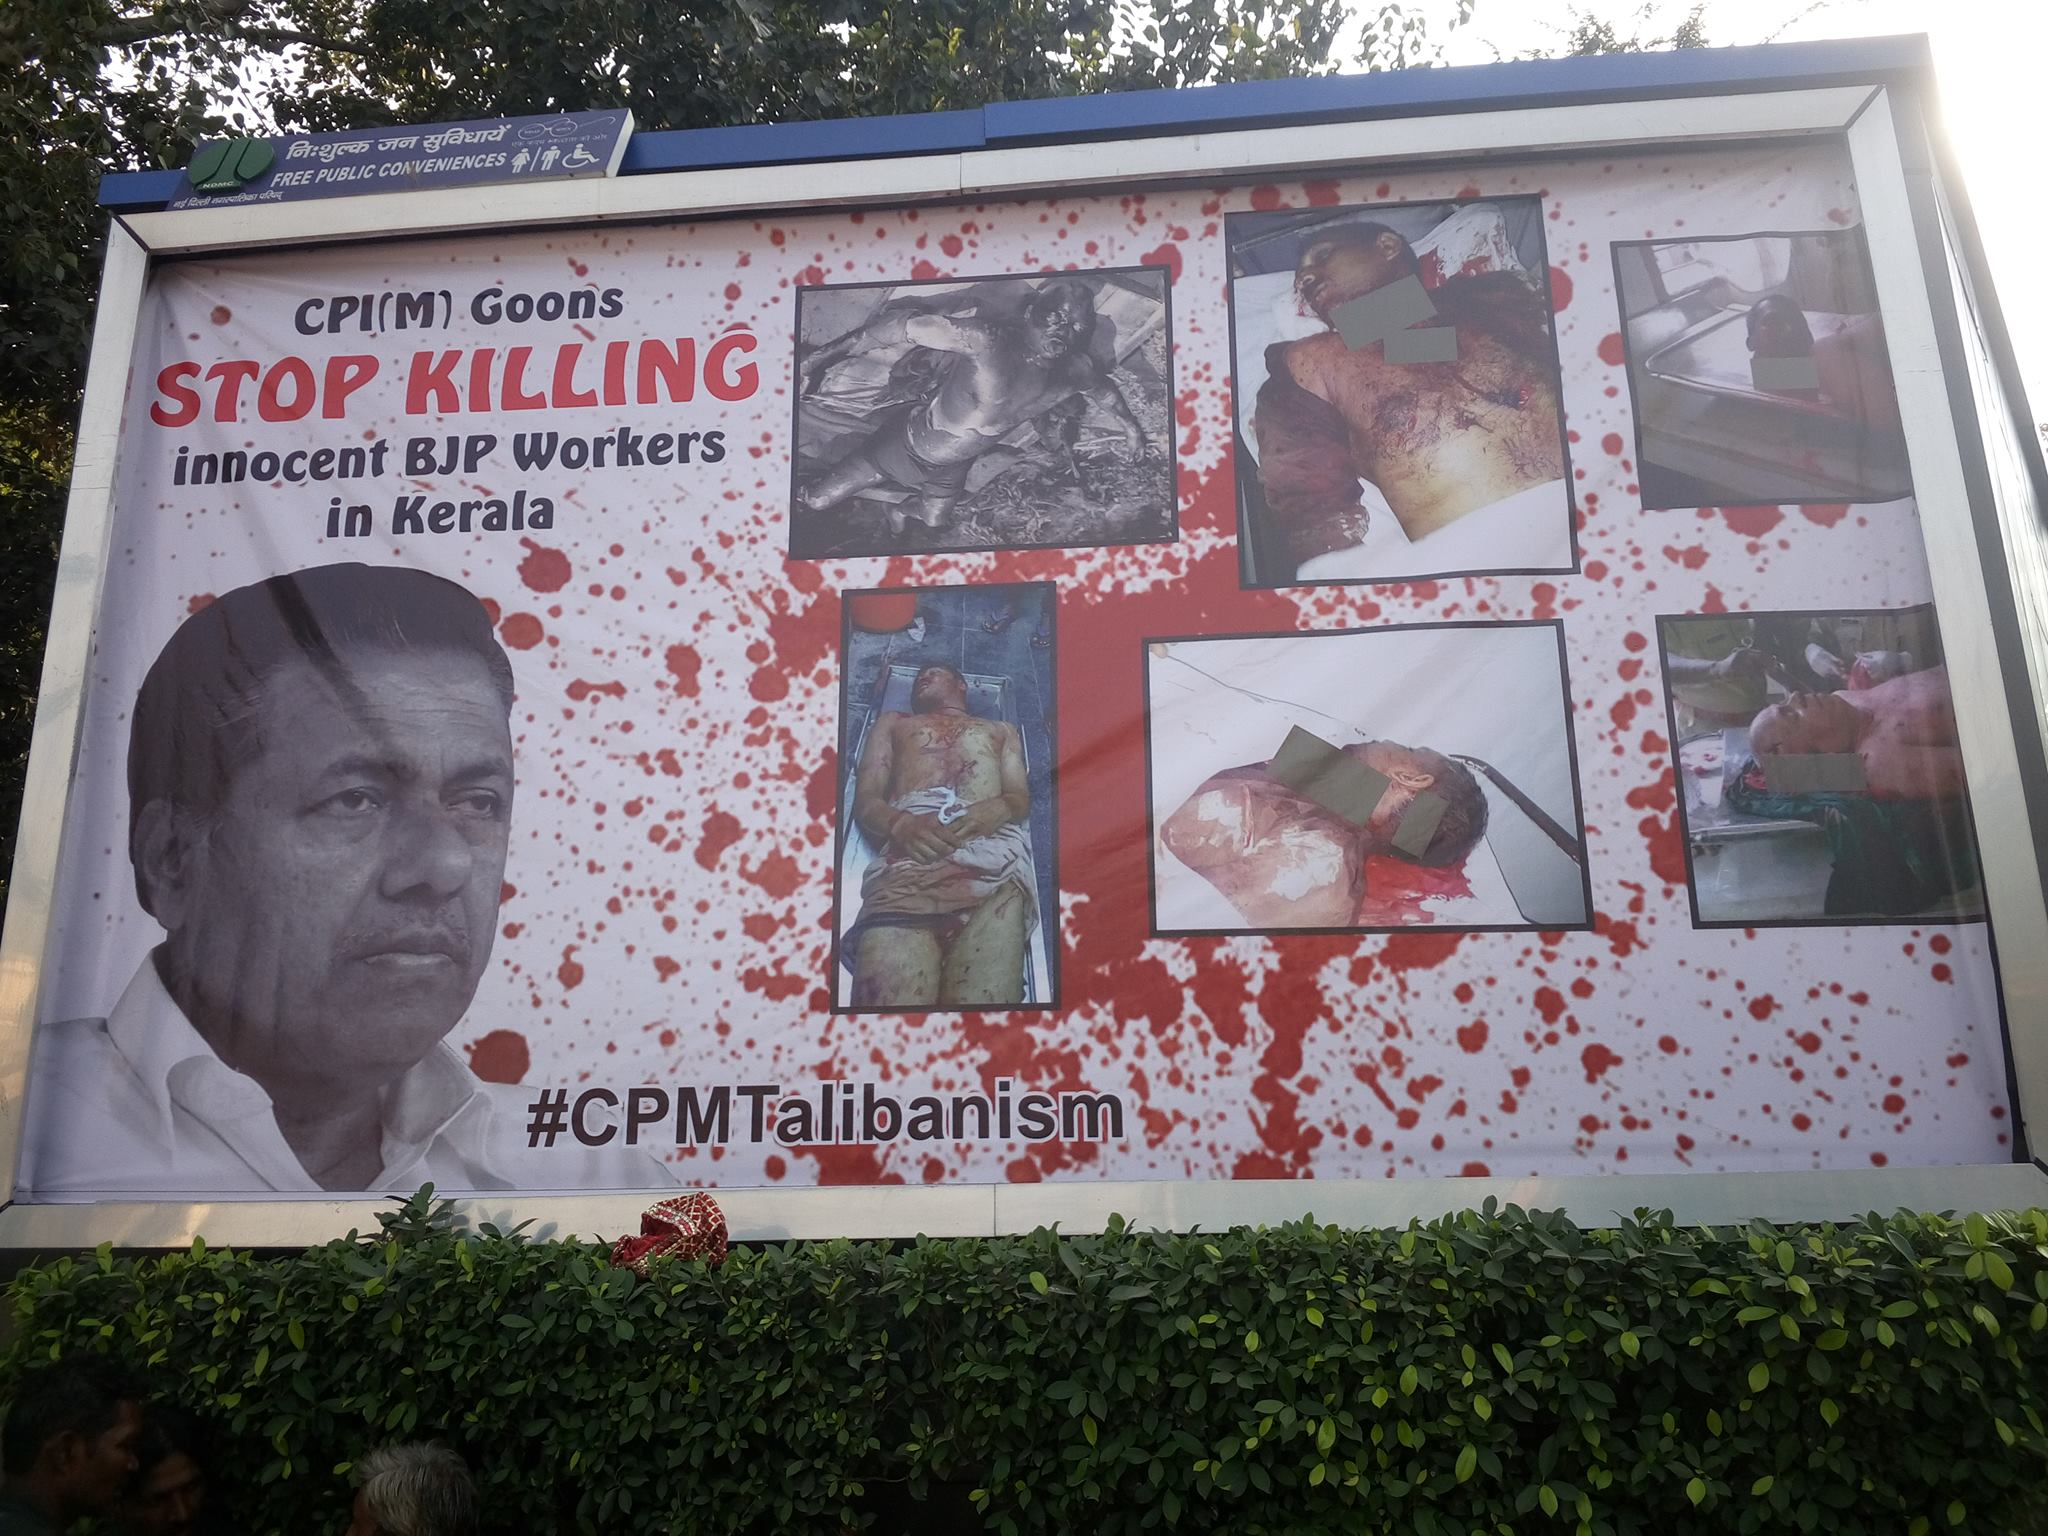 BJP places gruesome banners of Kerala killings in New Delhi